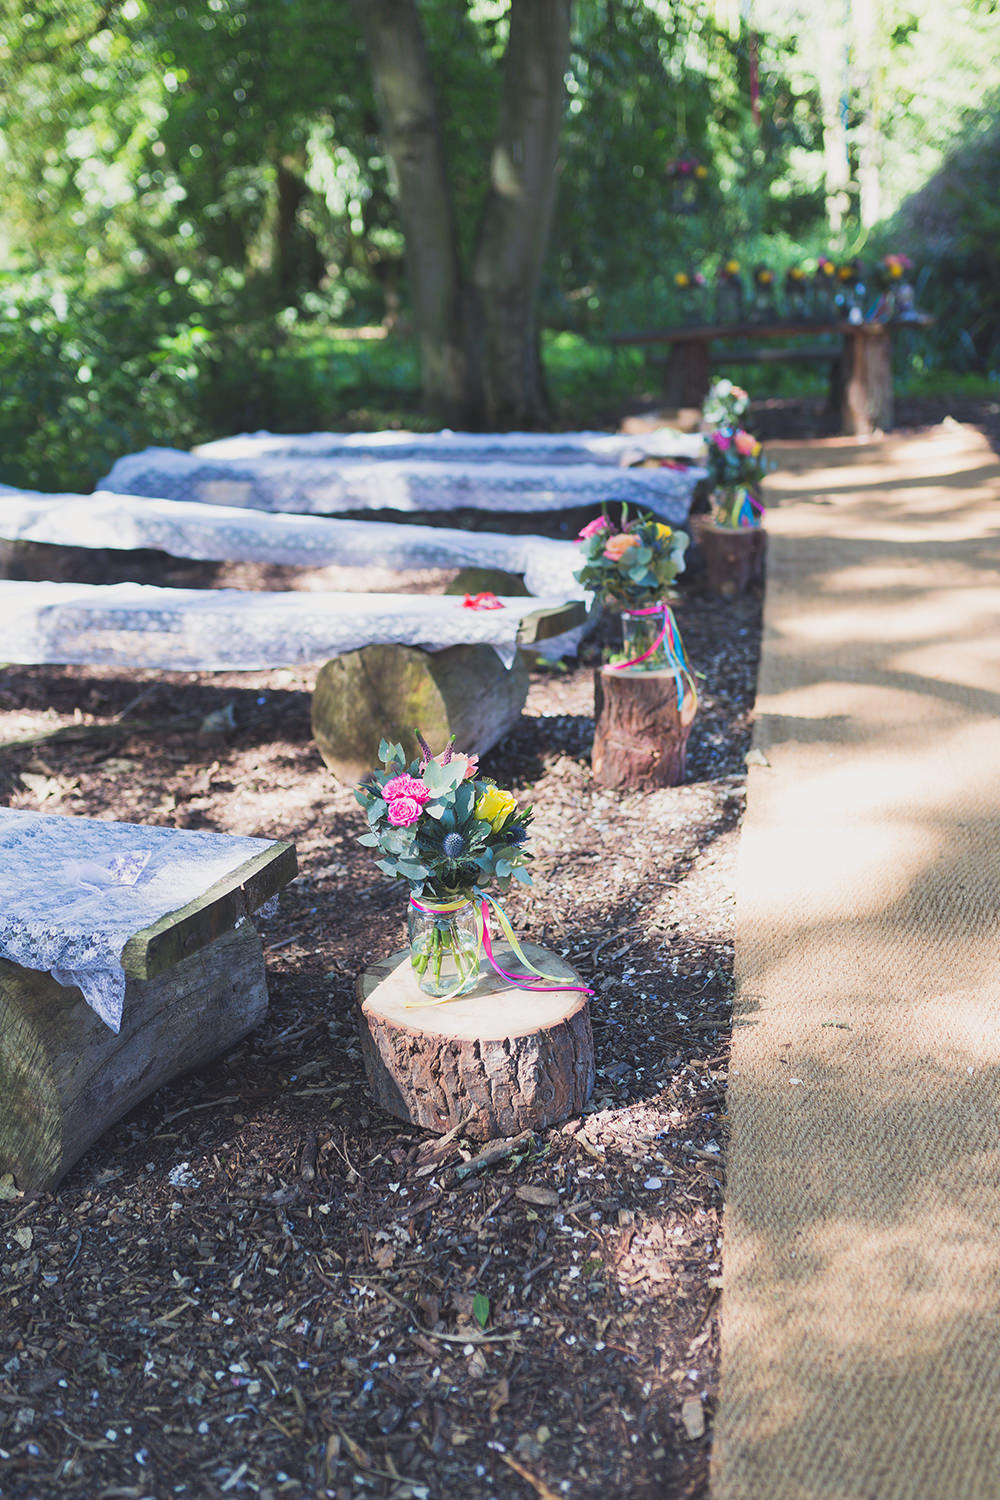 Outdoor Ceremony Wooden Benches Flowers Decor Aisle Flowers Vase Colourful Ribbons Log Stumps Hothorpe Hall Woodlands Wedding Lucy Long Photography